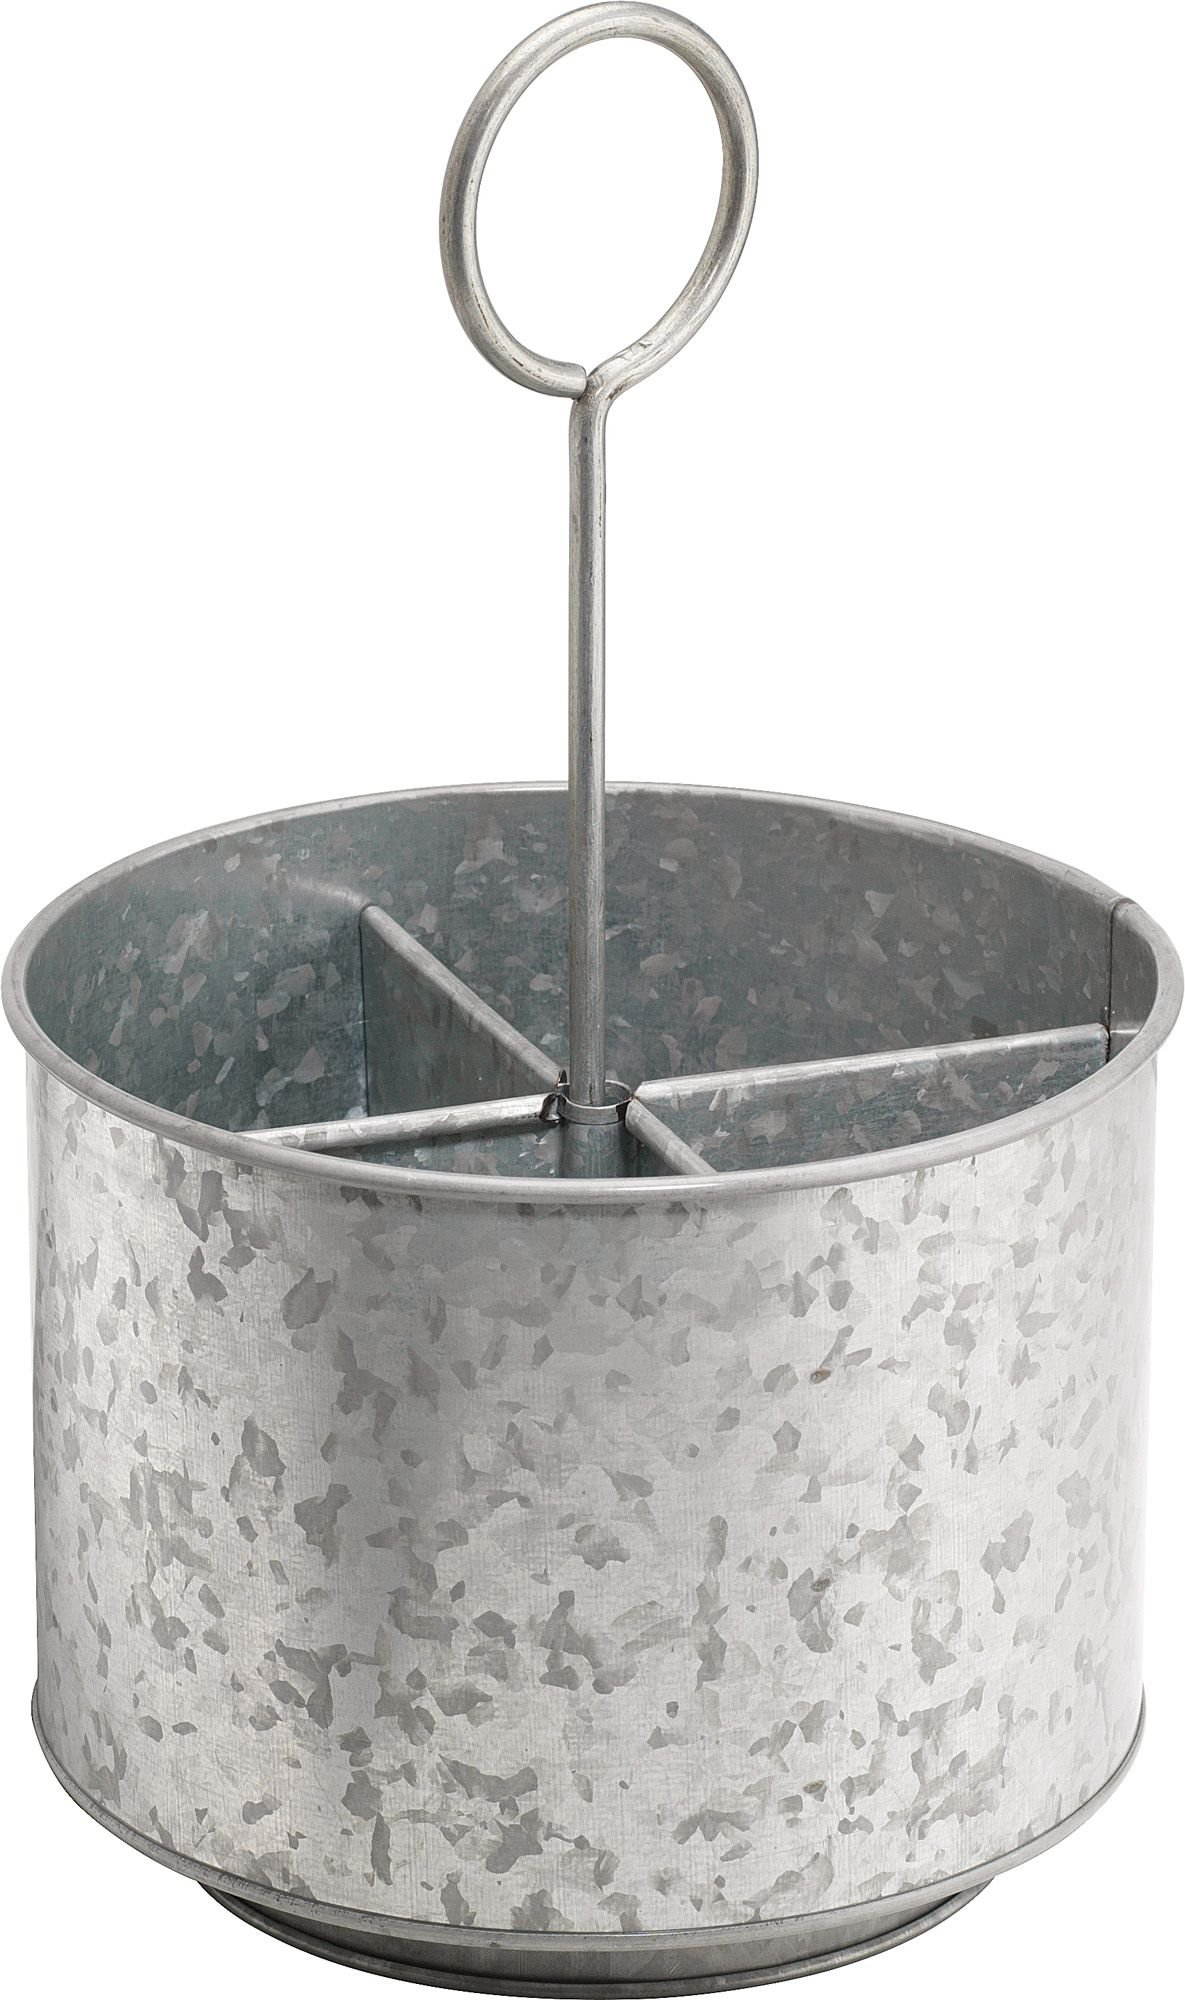 KOVOT Galvanized Rotating Utensil Caddy & Organizer | Rustic & Country Style Decor | Measures 7.5'' x 7.5'' x 12.5''H by Kovot (Image #1)